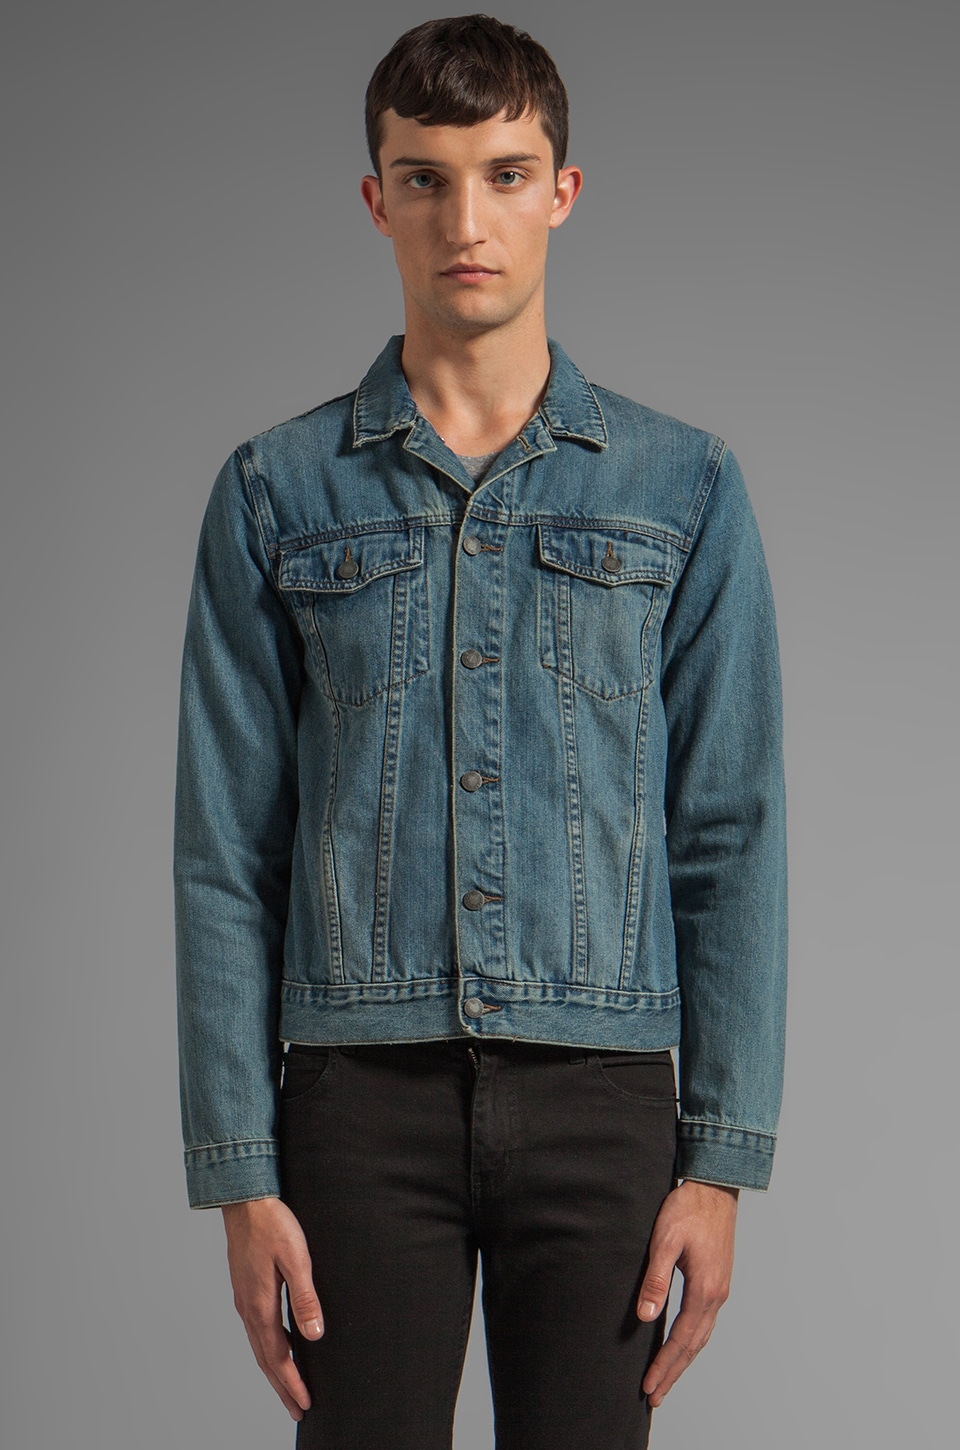 Cheap Monday Staple Denim Jacket in Heavy Worn